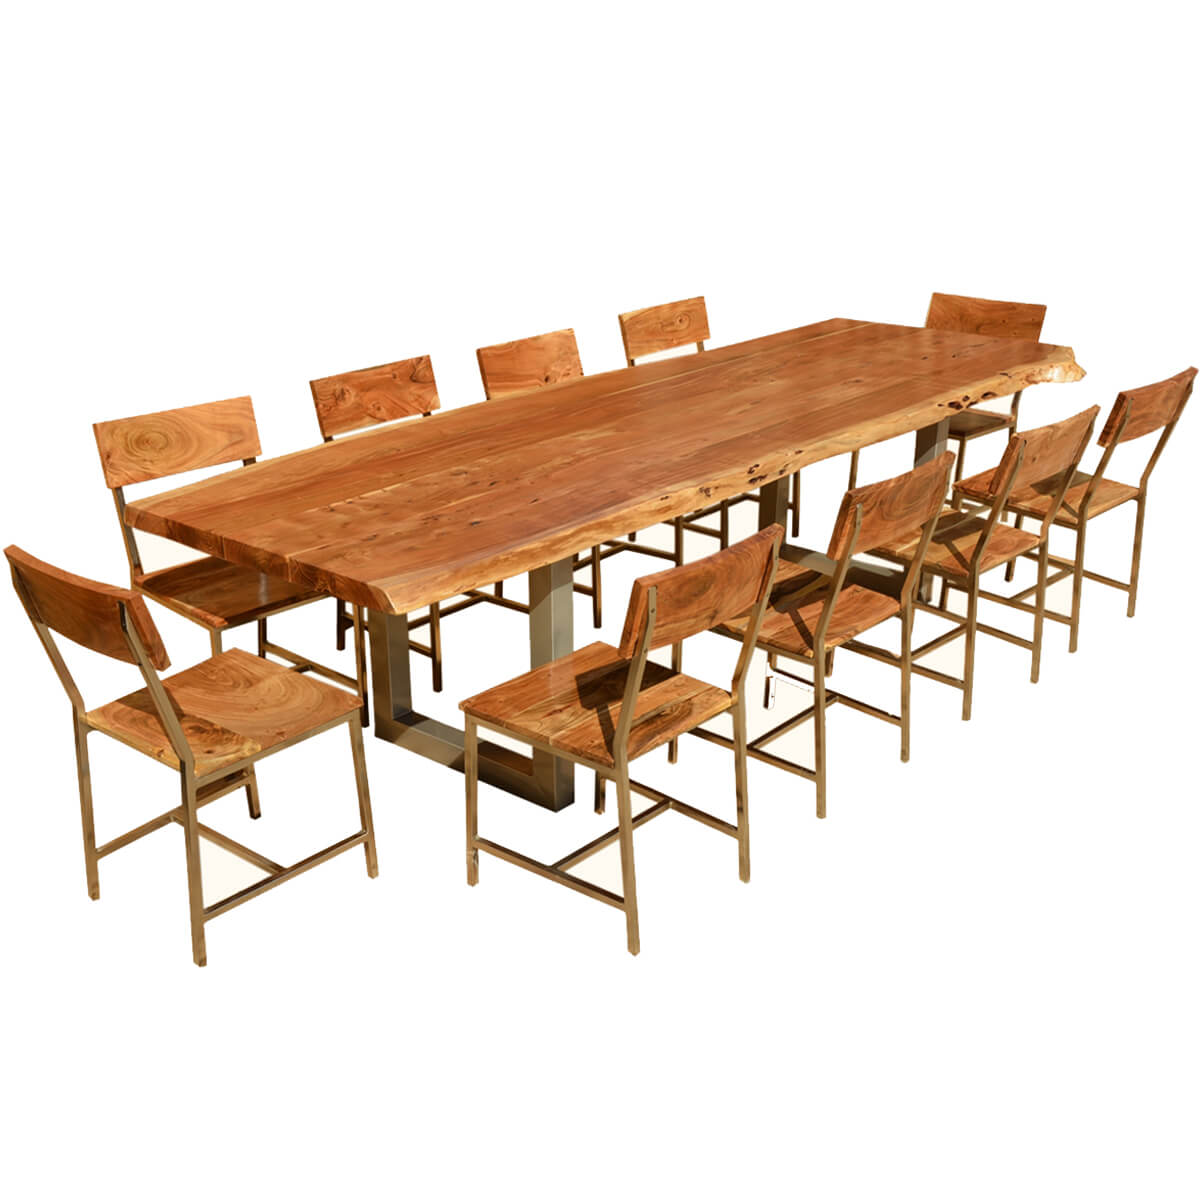 10 chair dining table set long couch sofa live edge acacia wood and iron 117 modern rustic